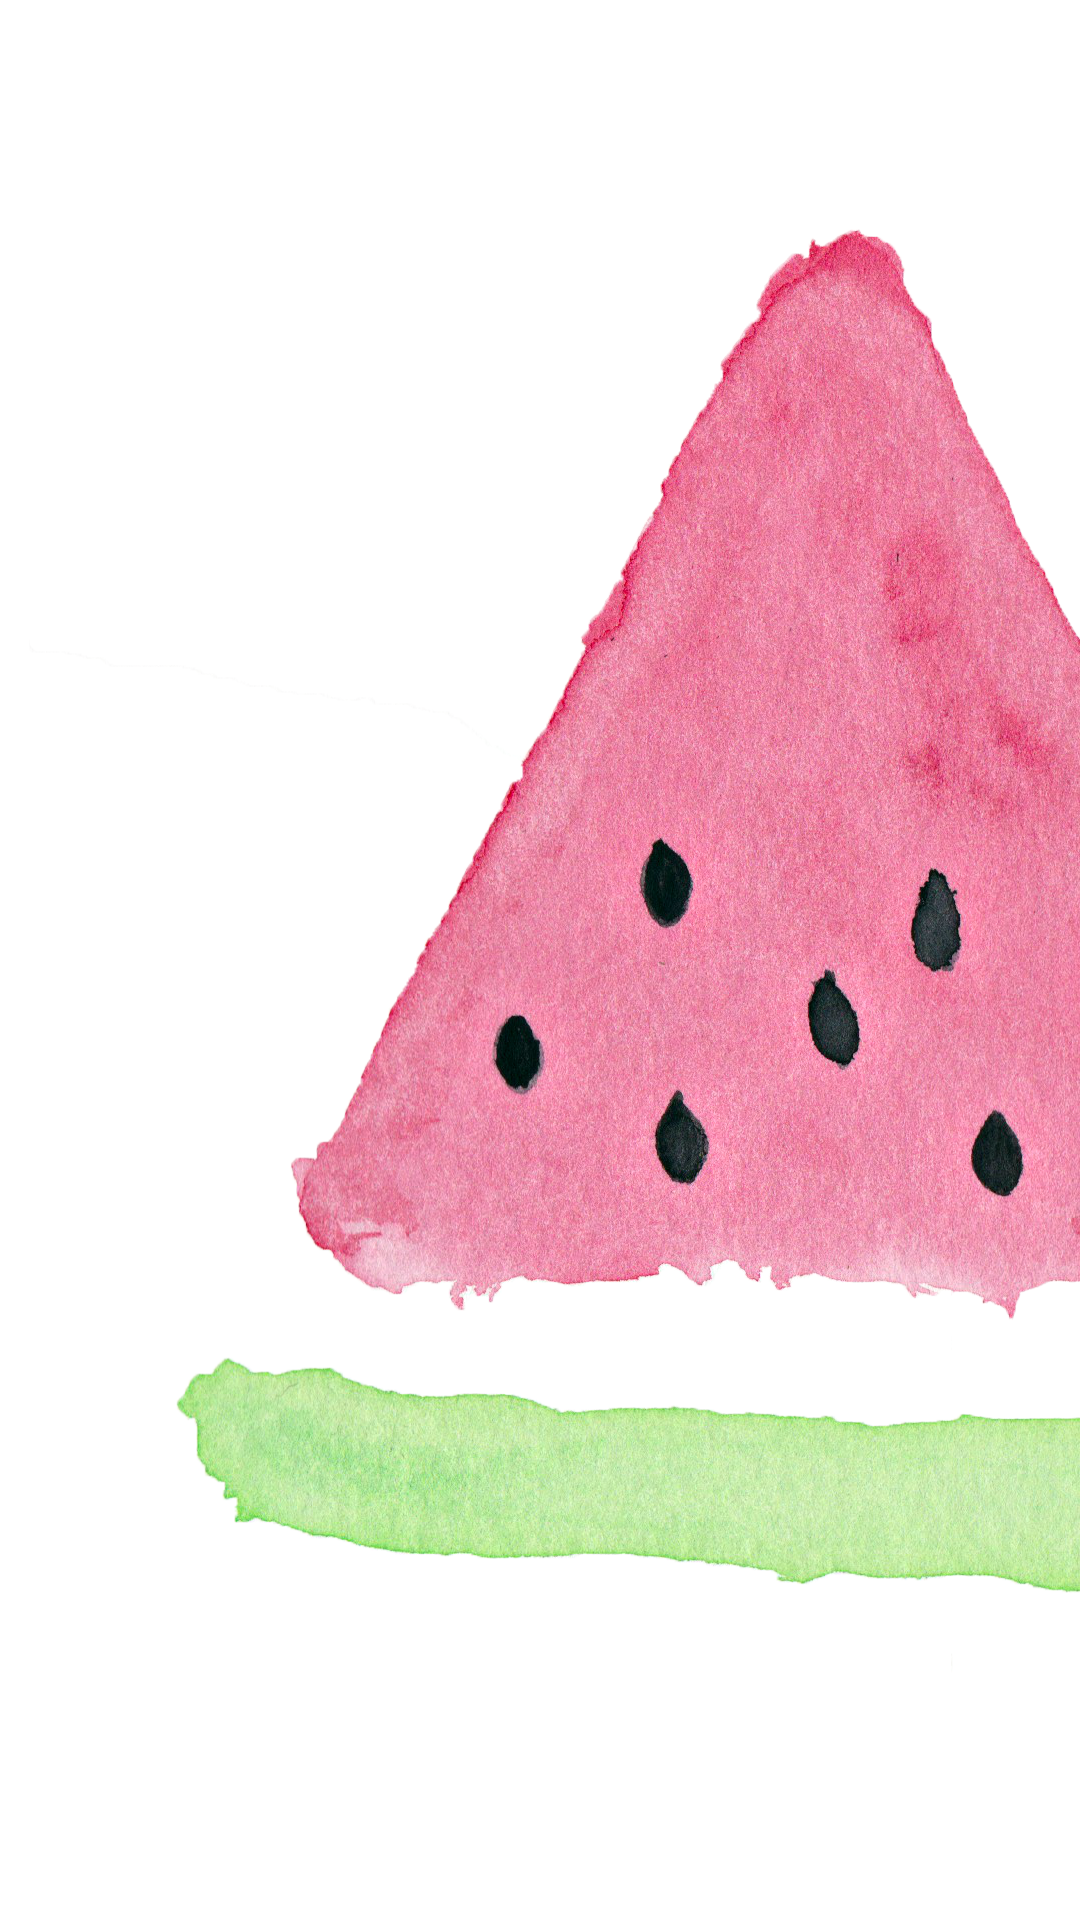 Download Watermelon Watercolor Hand Painting iPhone 6 Plus ...